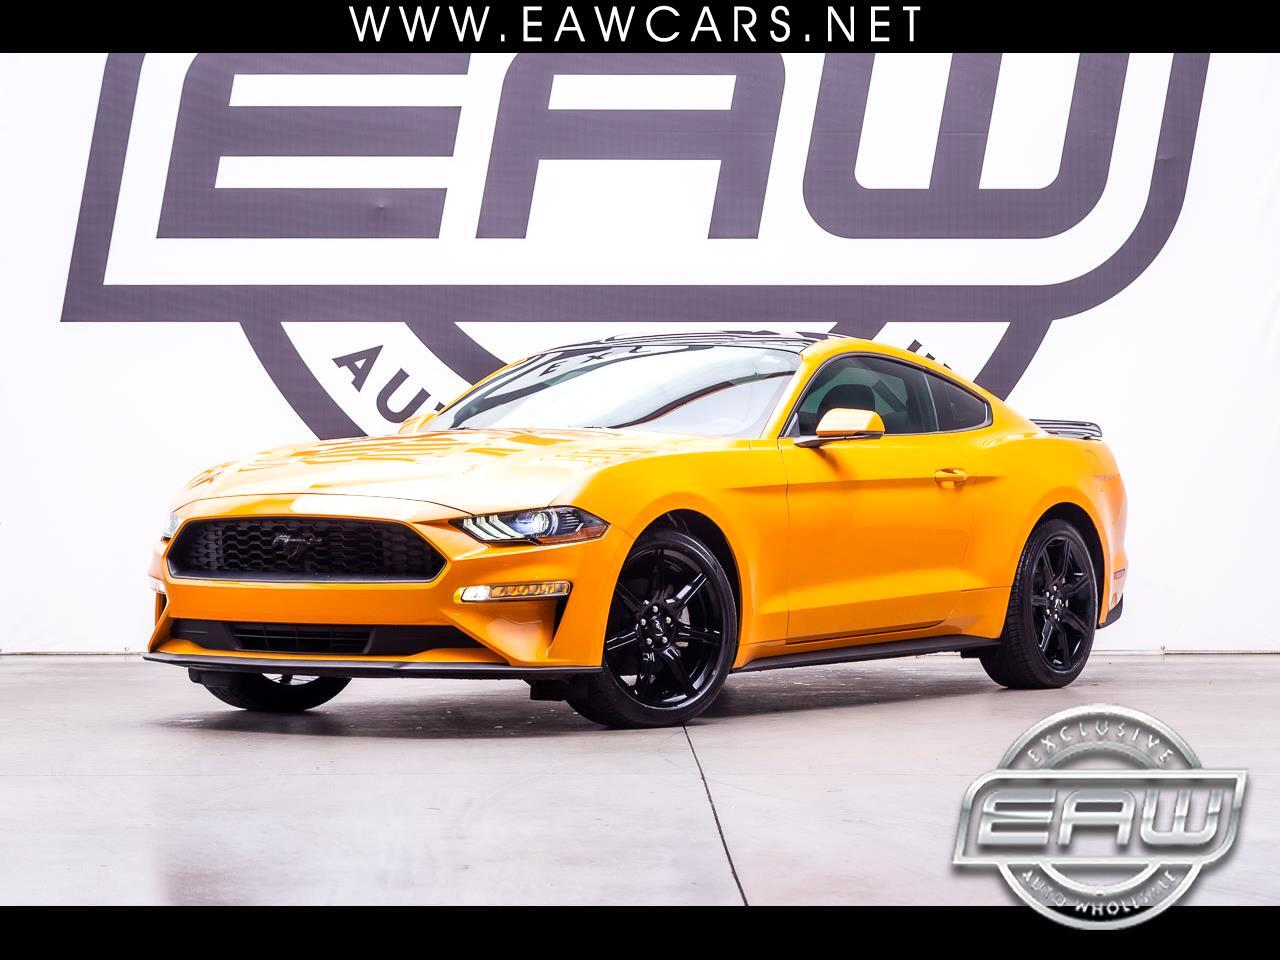 2018 Ford Mustang 2dr Fastback EcoBoost Premium